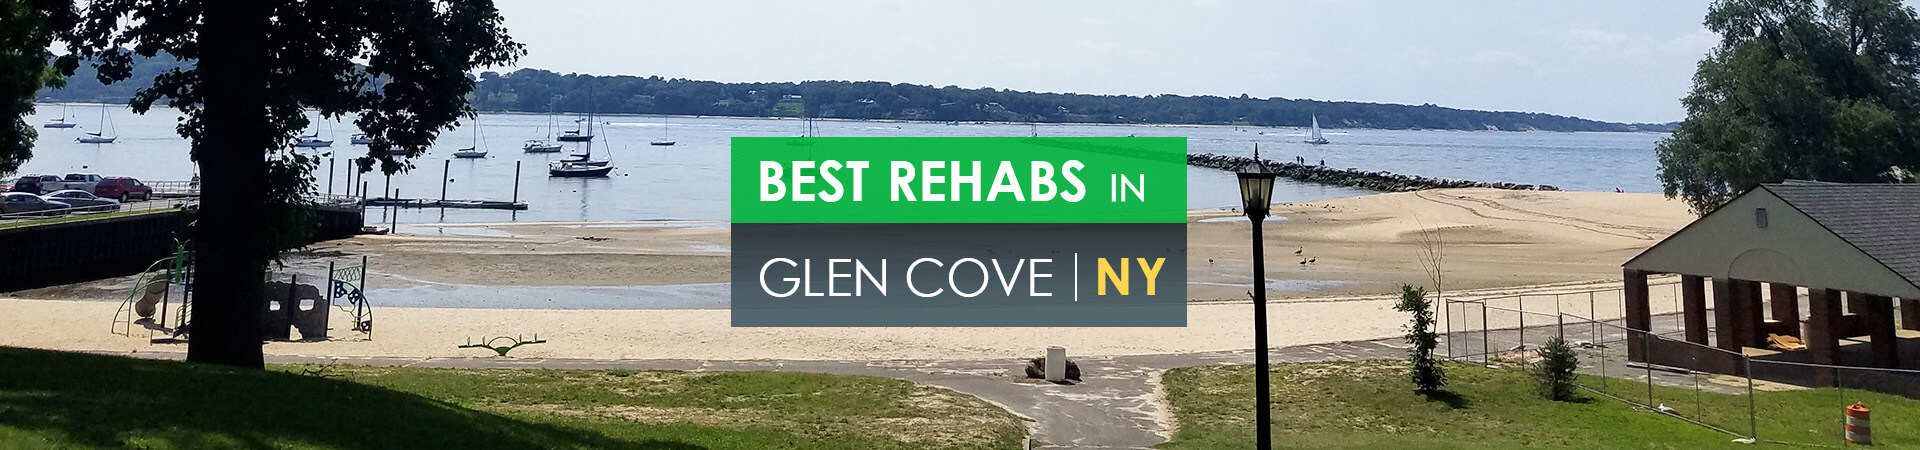 Best rehabs in Glen Cove, NY